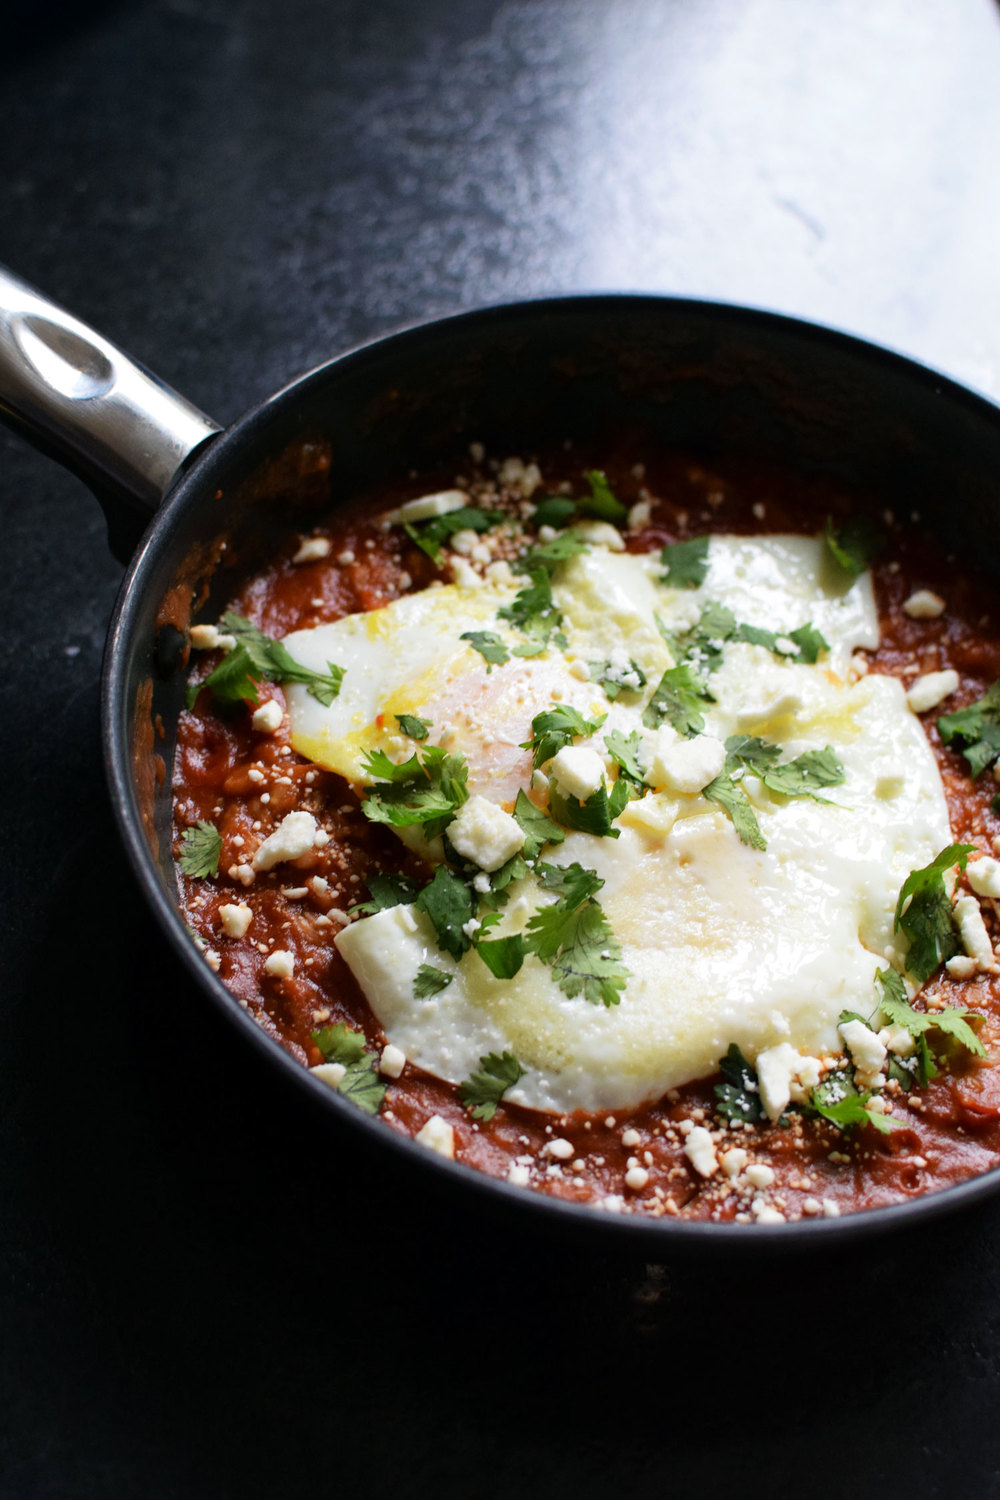 Easy and fast shakshuka is ready in 7 minutes with 0 prep time. you have to try this tomato and egg bake that is vegetarian an healthy! Yum!  | themillennialmenu.com